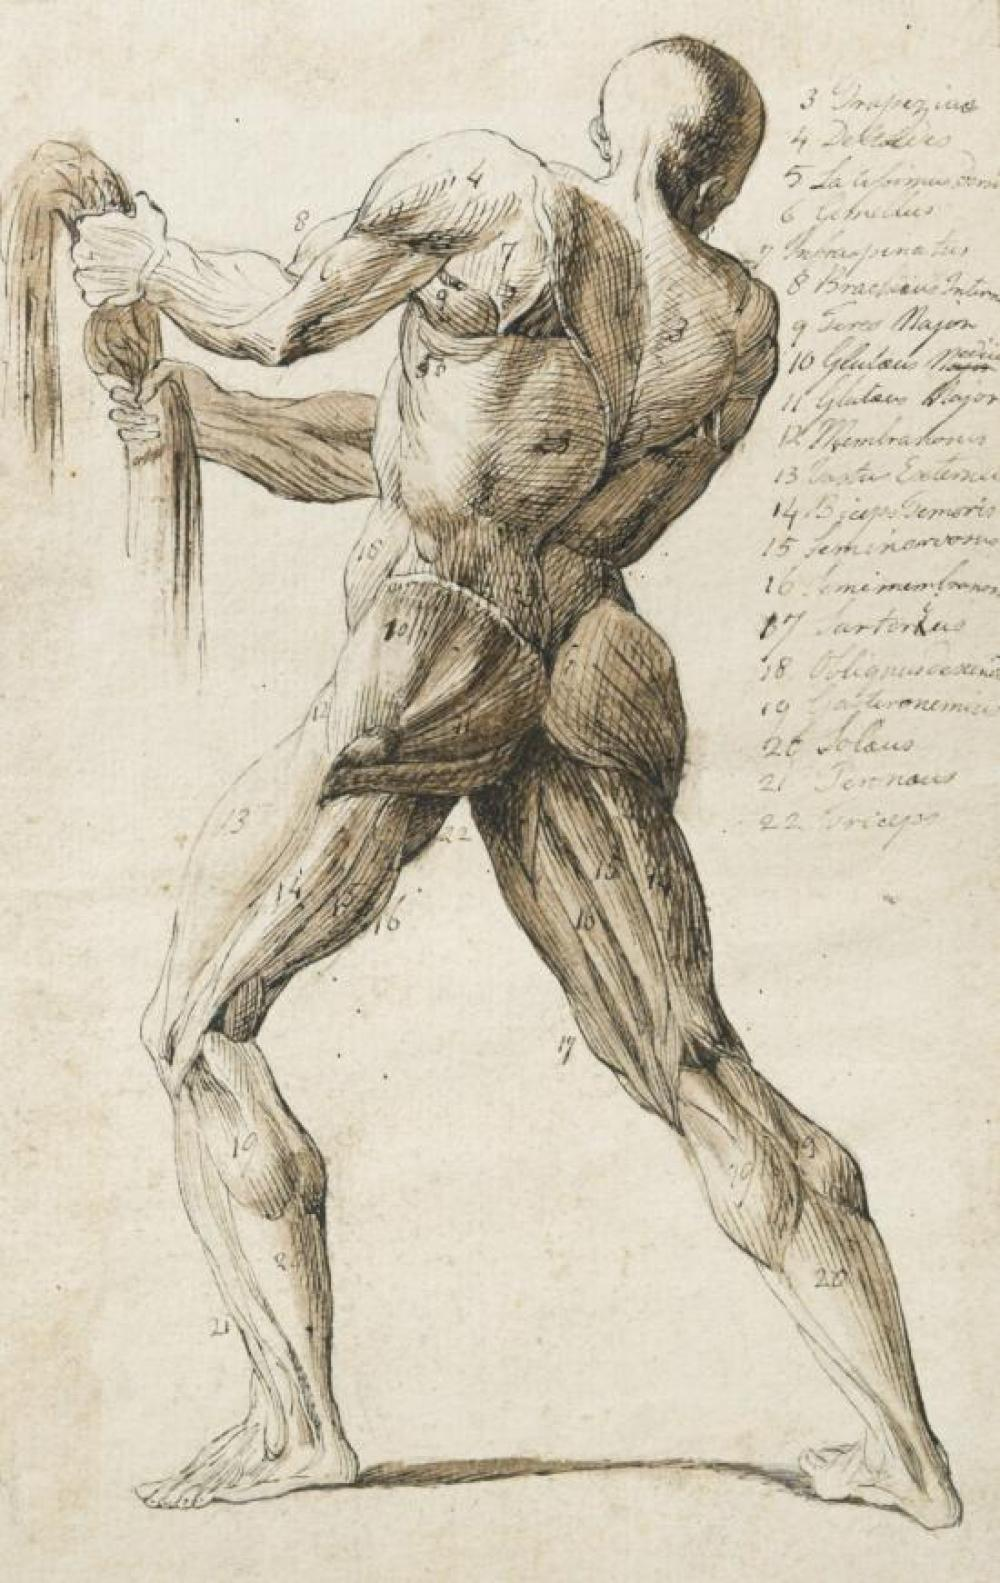 Italian School, 18th Century A group of 4 anatomical studies showing the human musculature and the sinews and ligaments of the human...